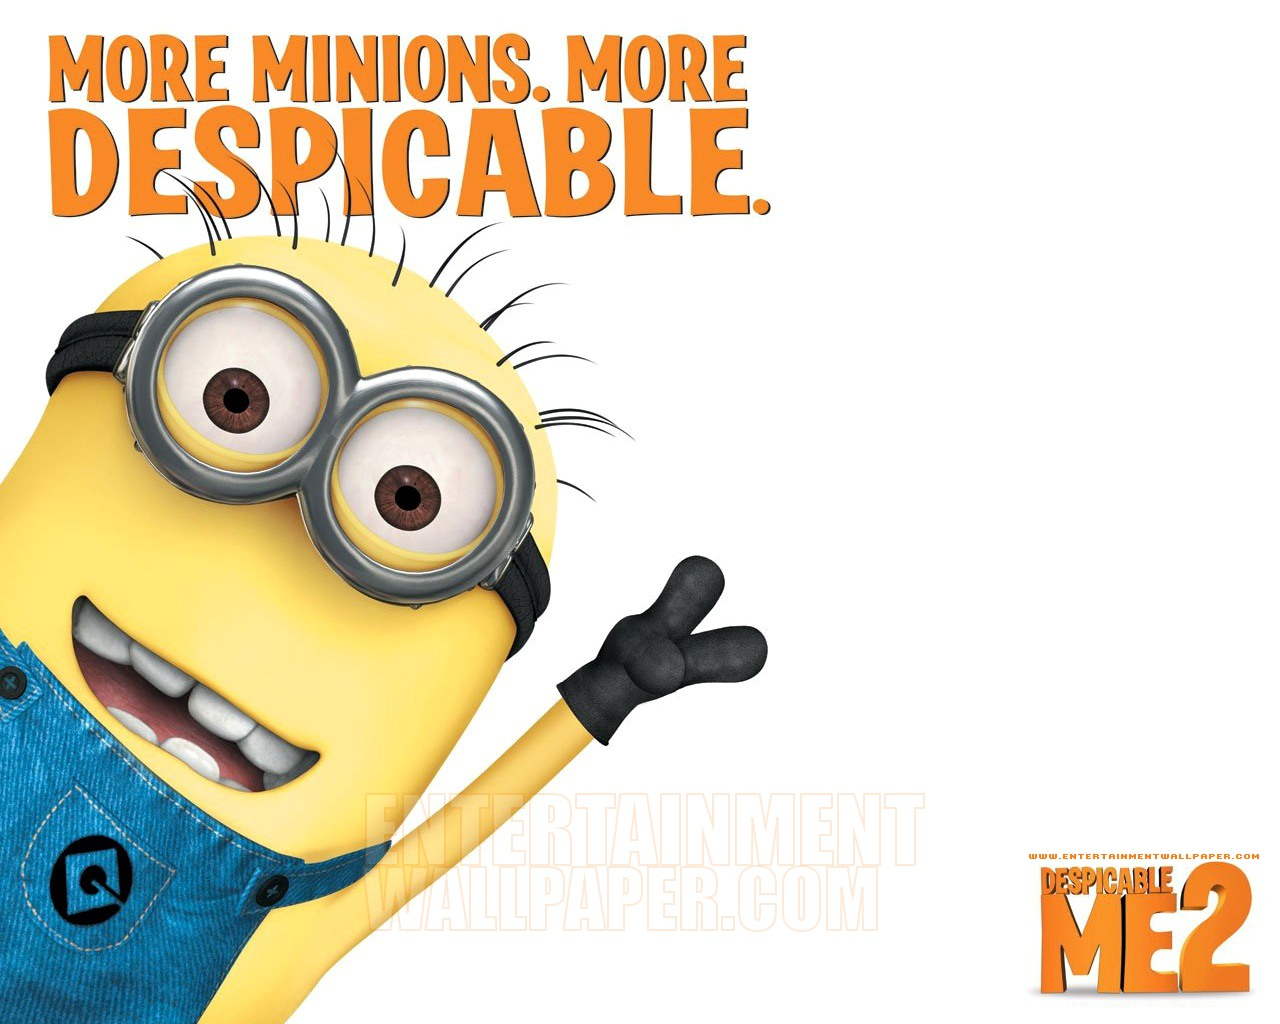 despicable me 2 club images despicable me 2!!!! hd wallpaper and